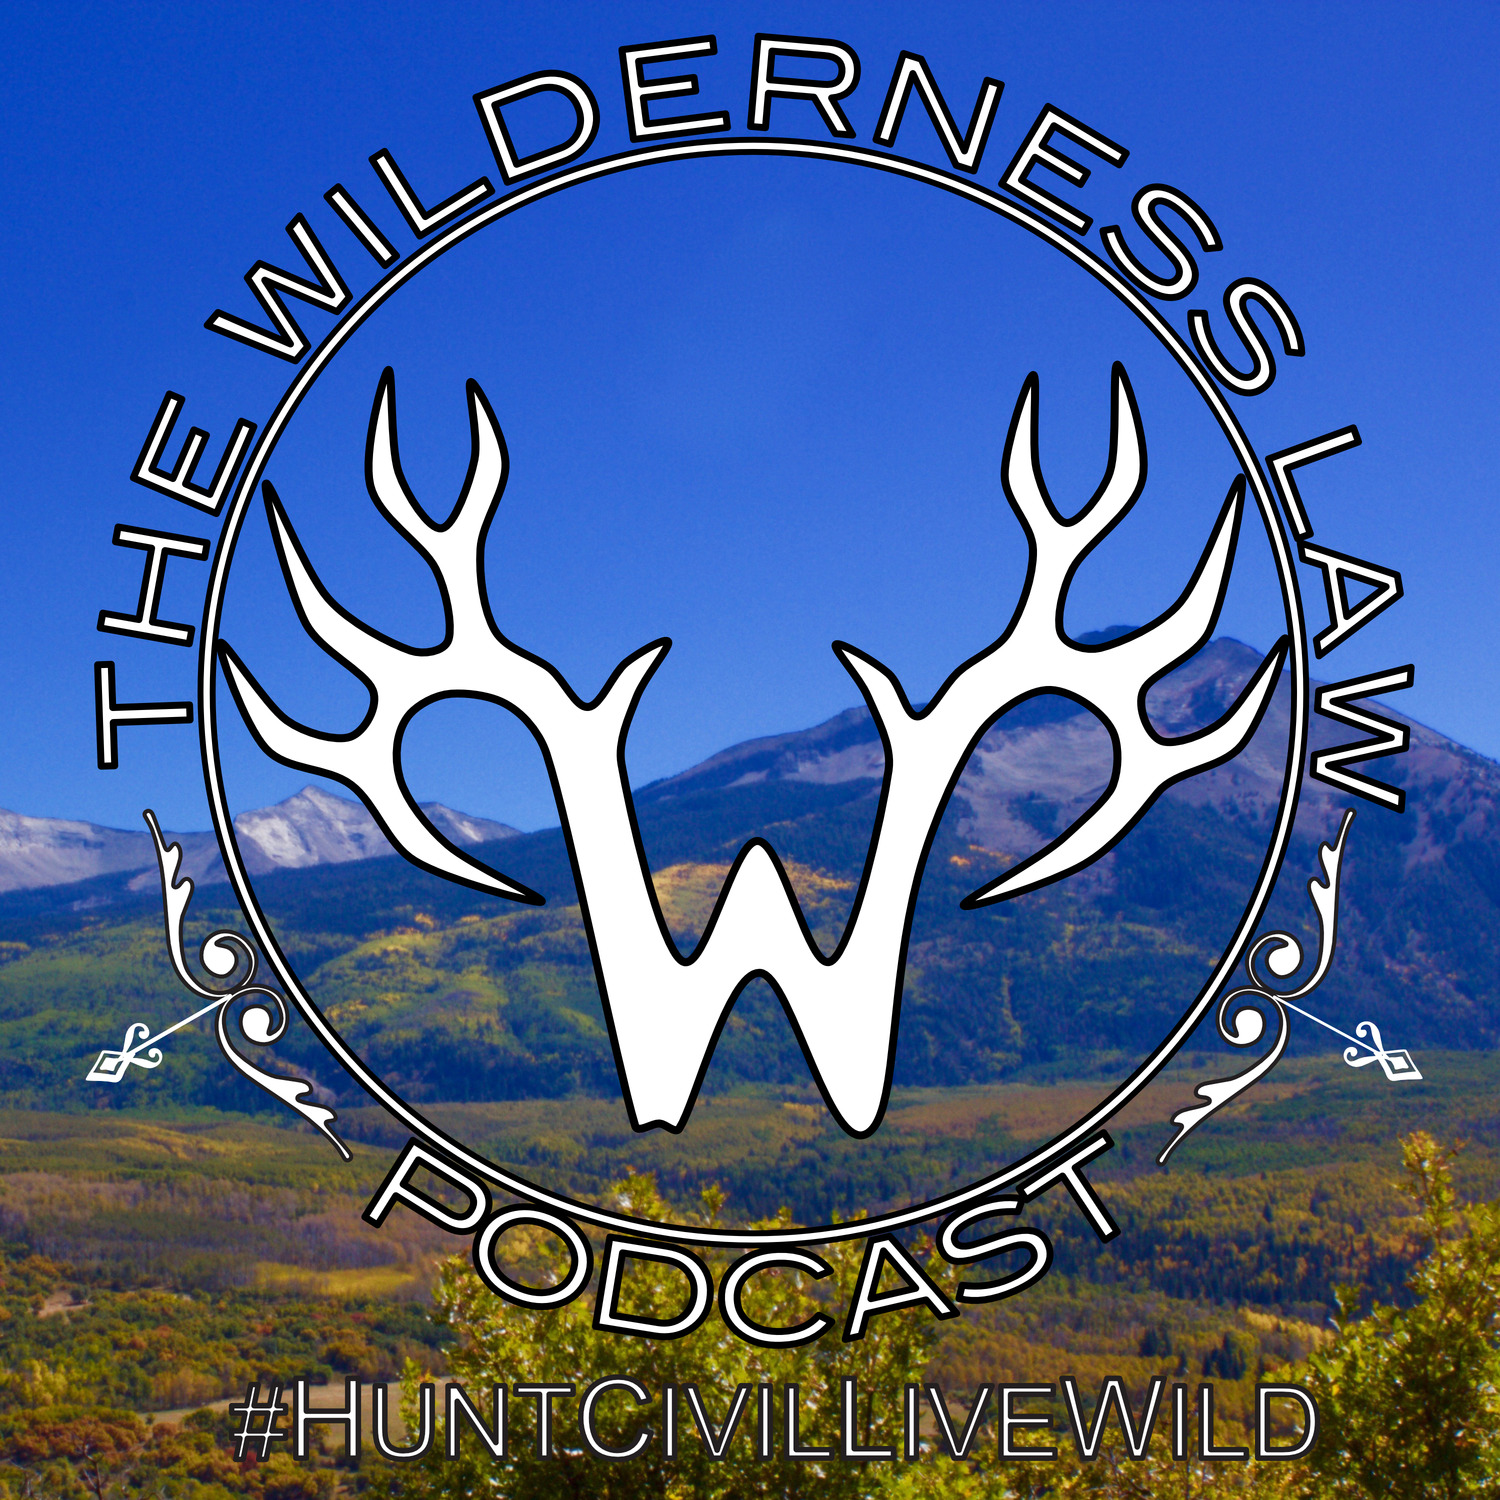 Wilderness Law